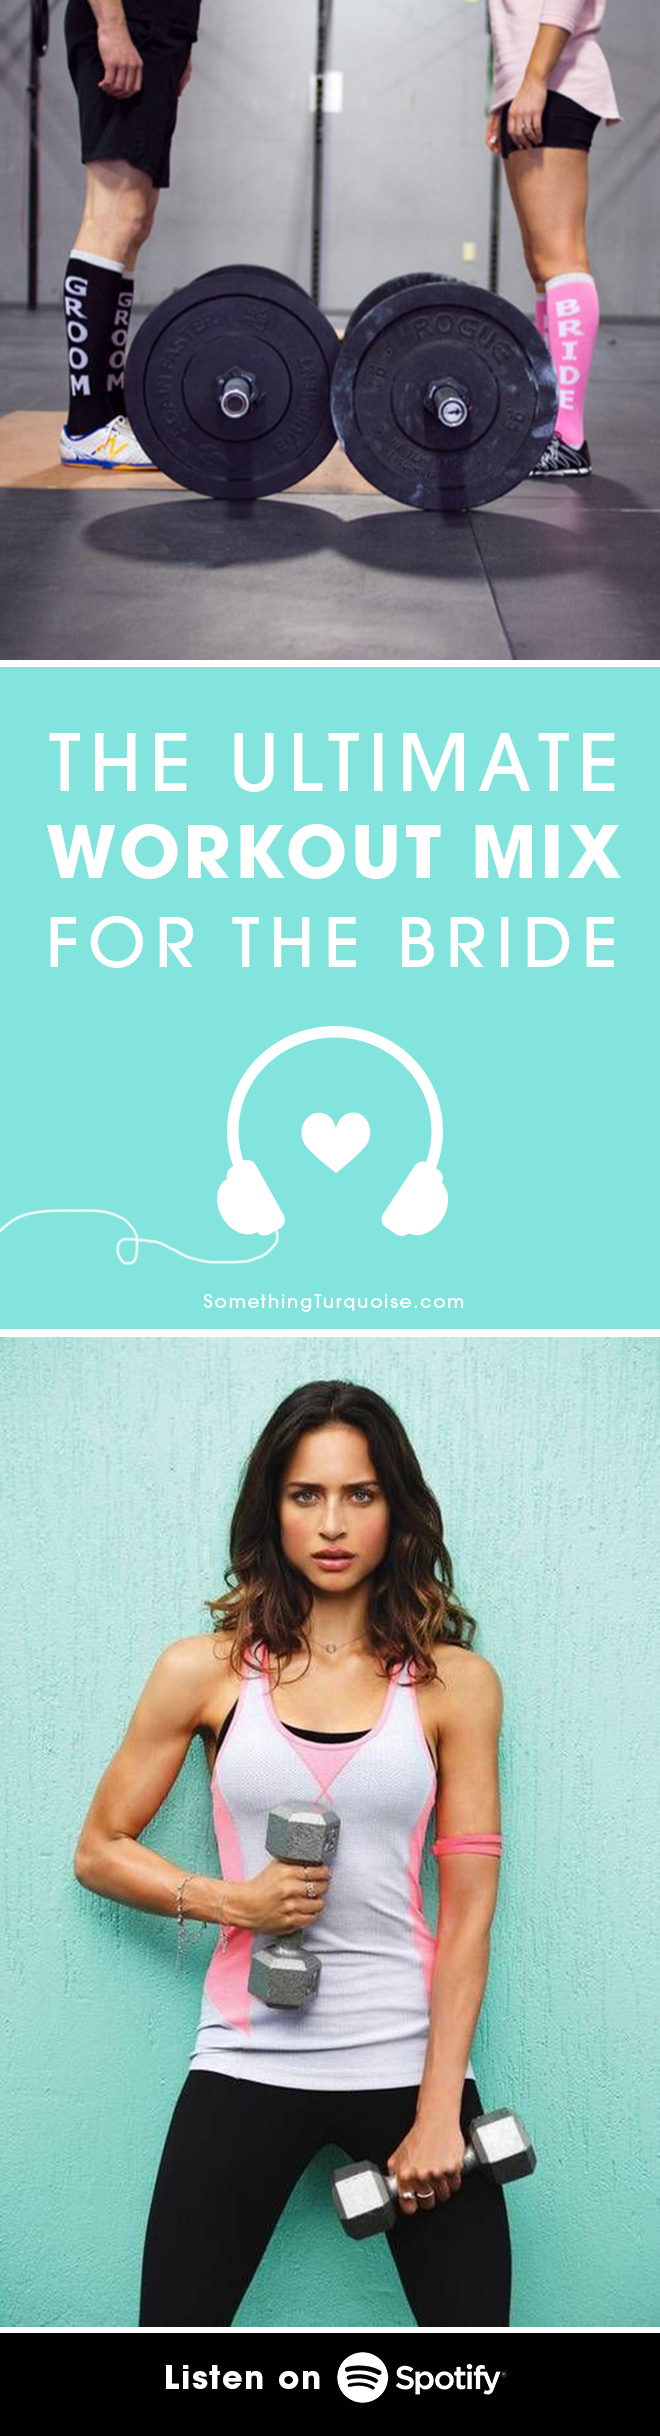 AWESOME Spotify playlist for your bridal workout!